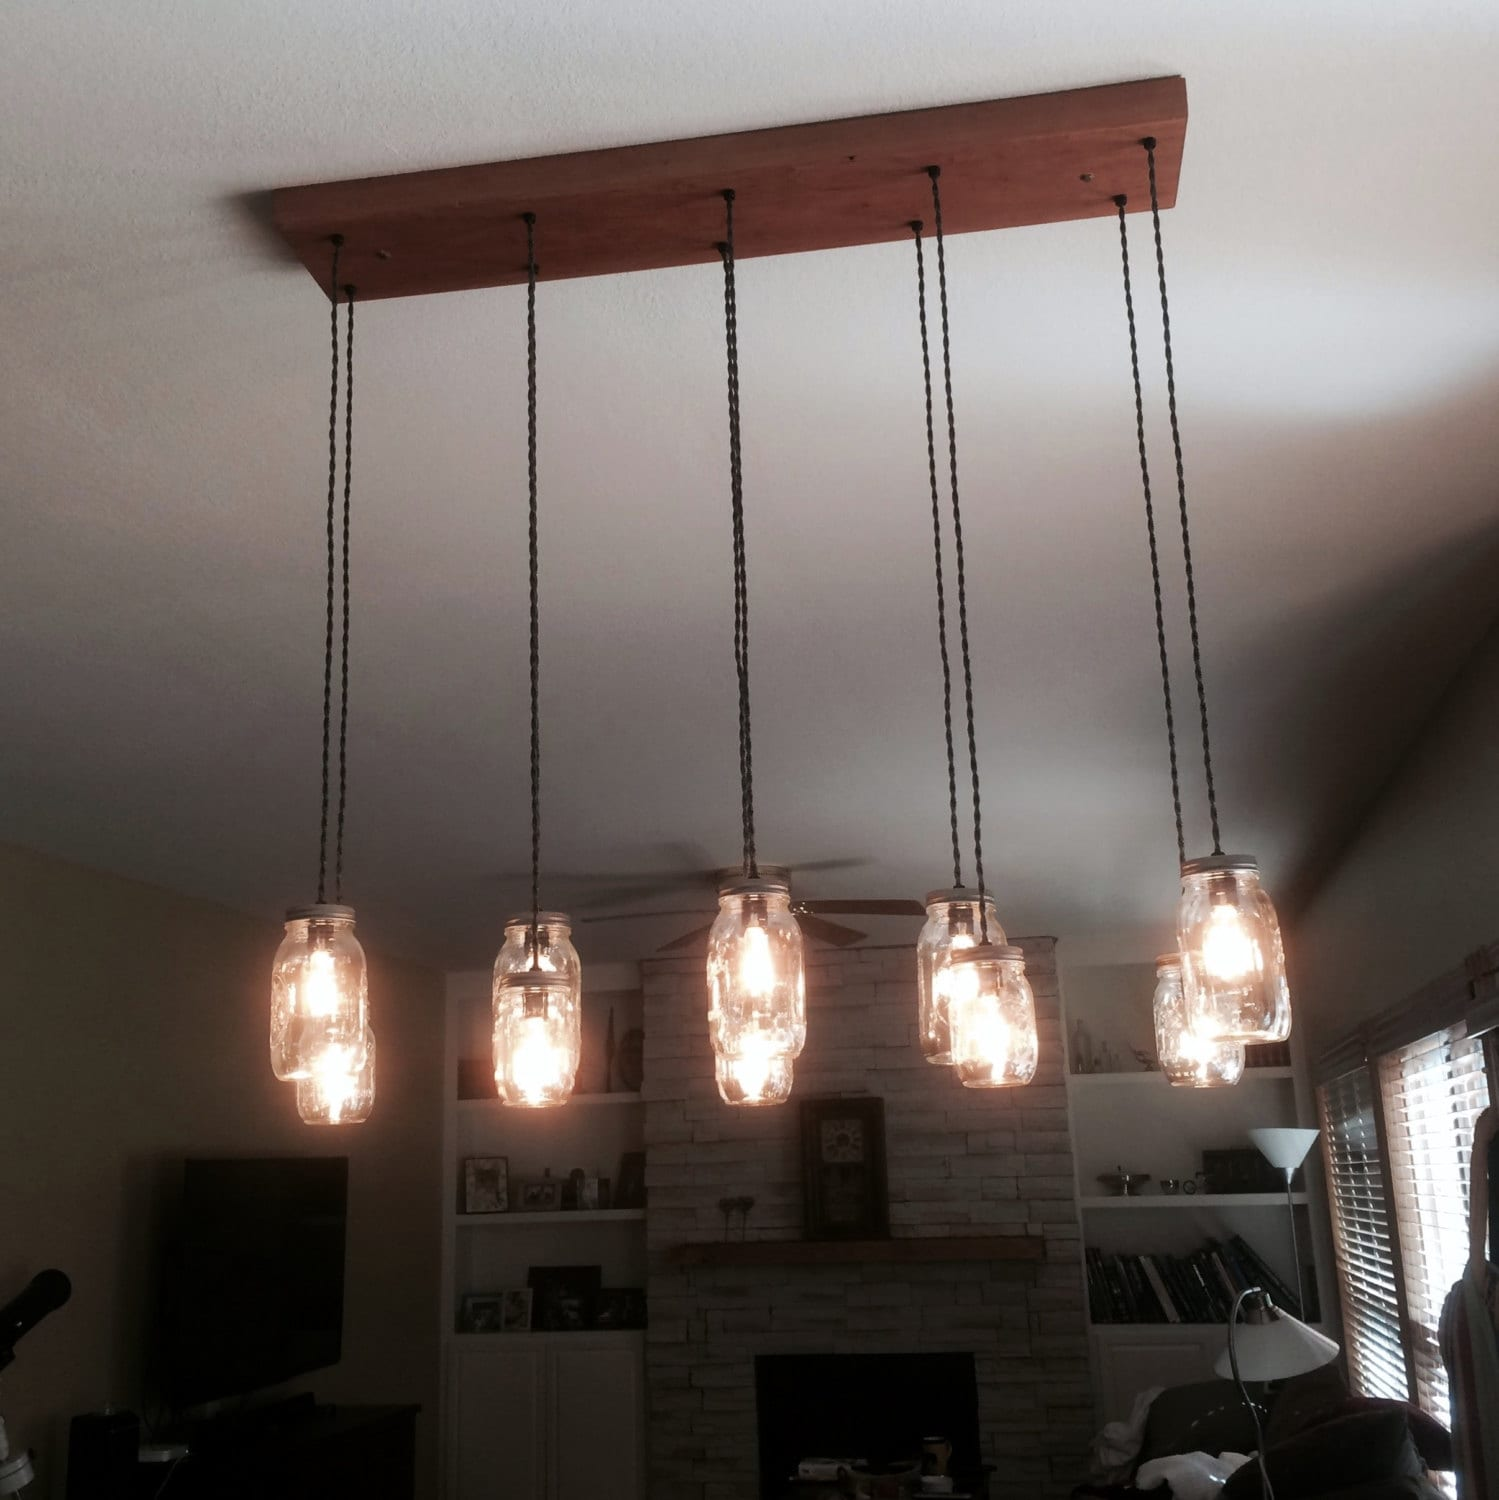 10 light diy mason jar chandelier rustic cedar rustic wood zoom arubaitofo Image collections